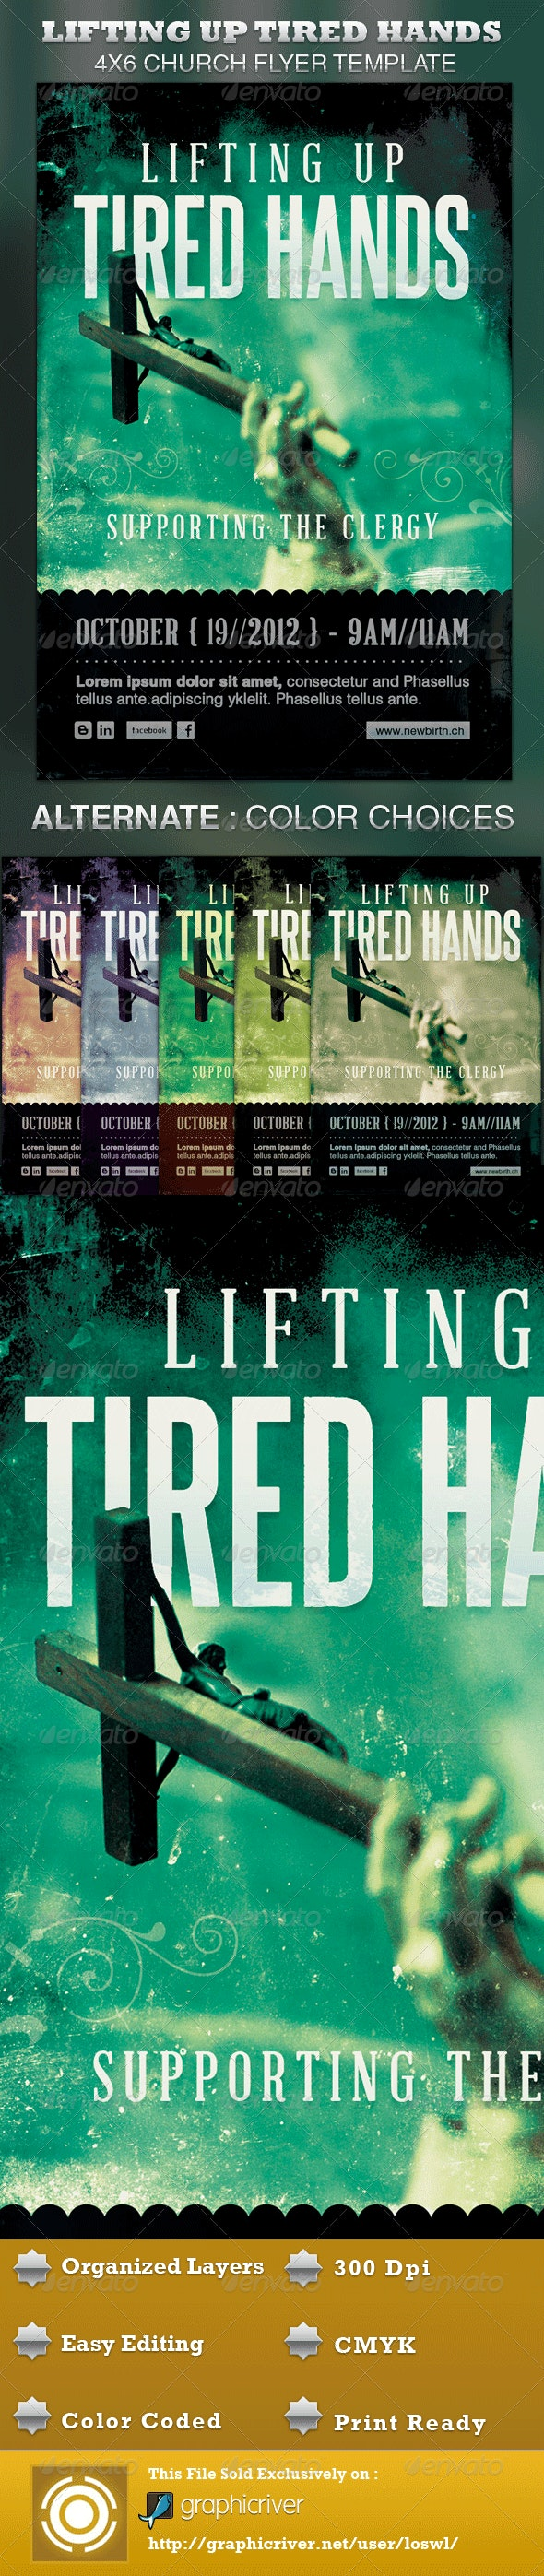 Lifting up Tired Hands Church Flyer Template - Church Flyers